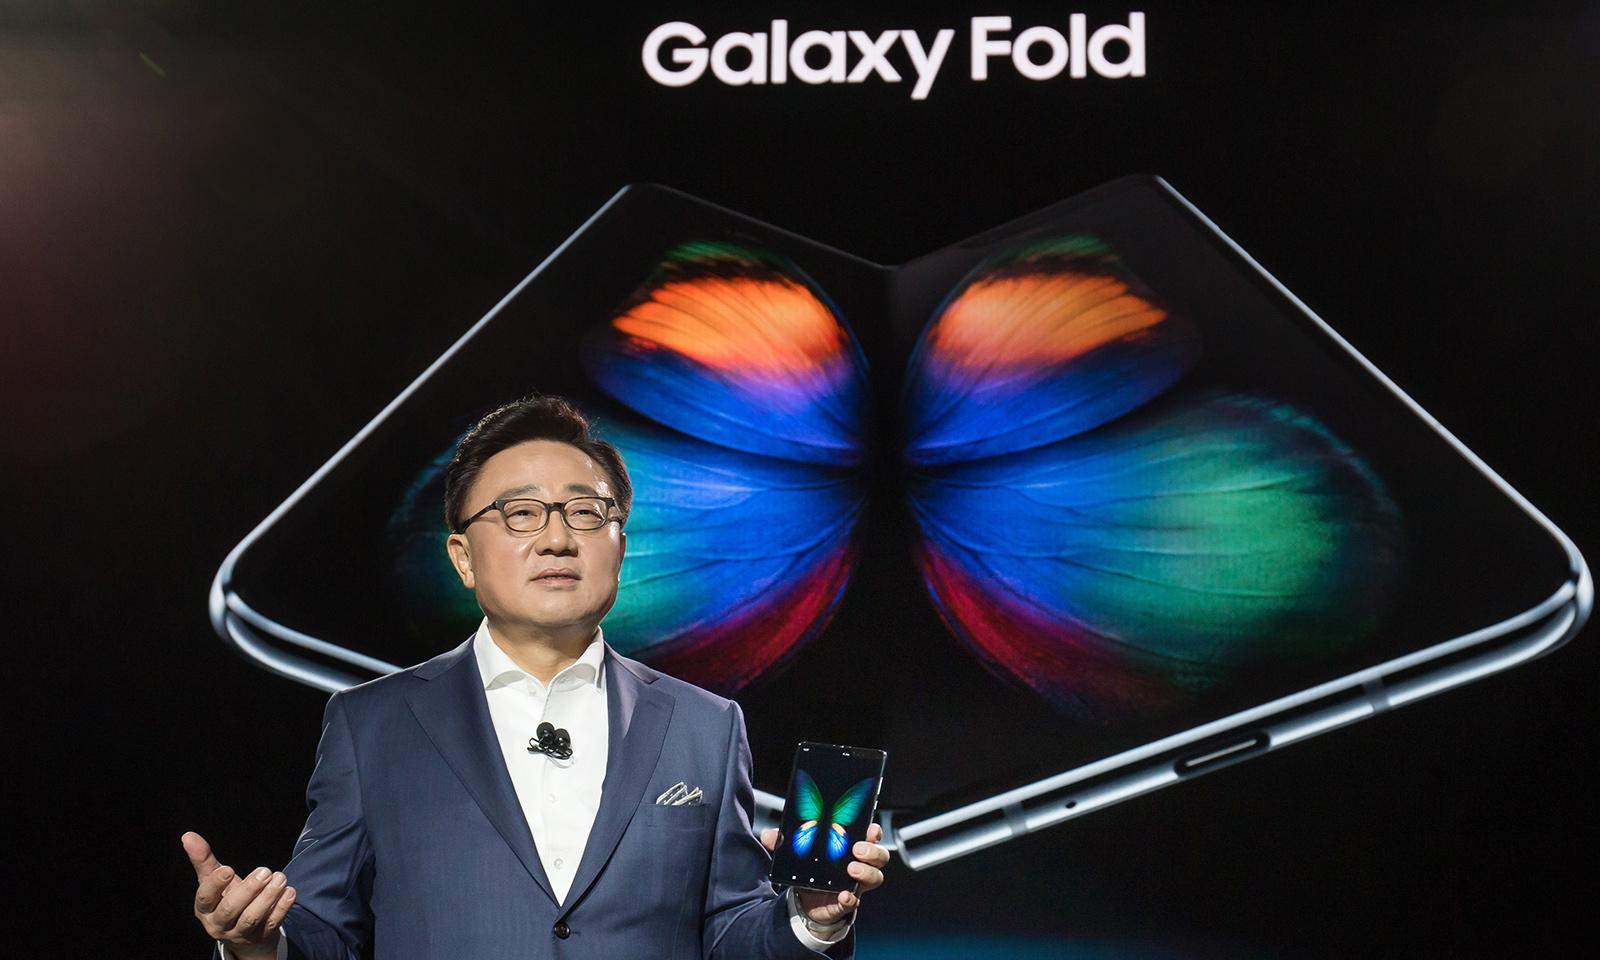 Samsung's $2,000 Galaxy Fold changes the smartphone game